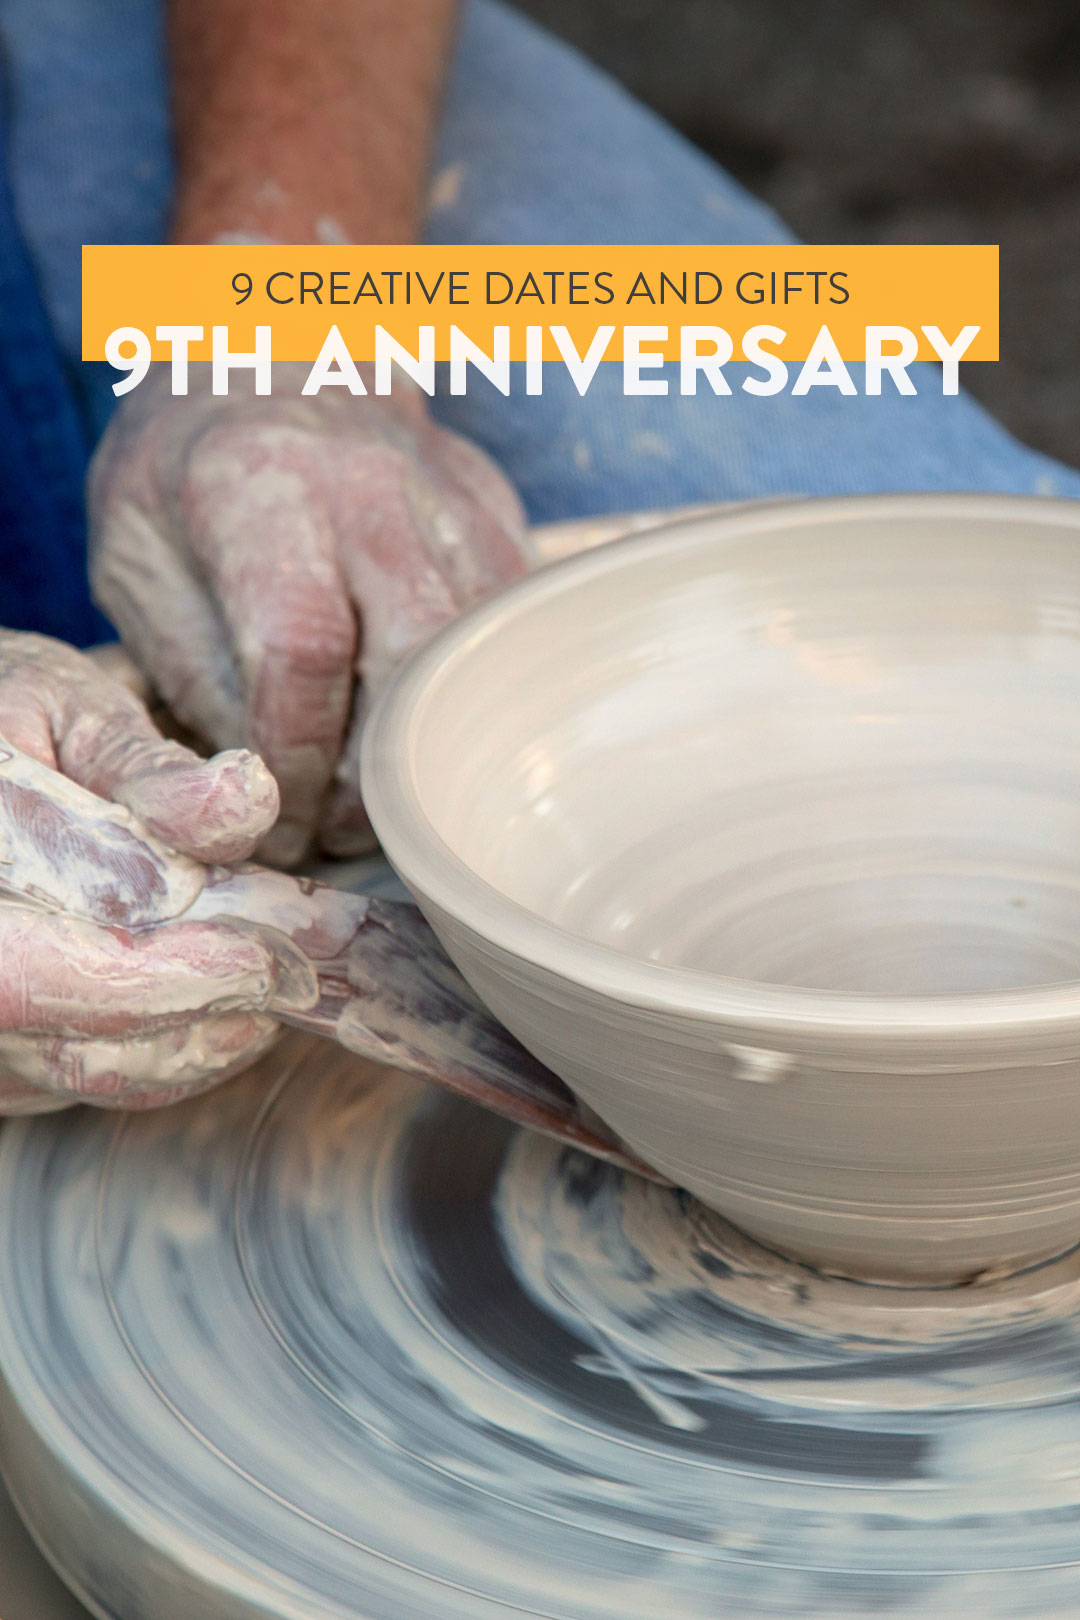 9 Creative 9th Anniversary Gift Ideas and Dates